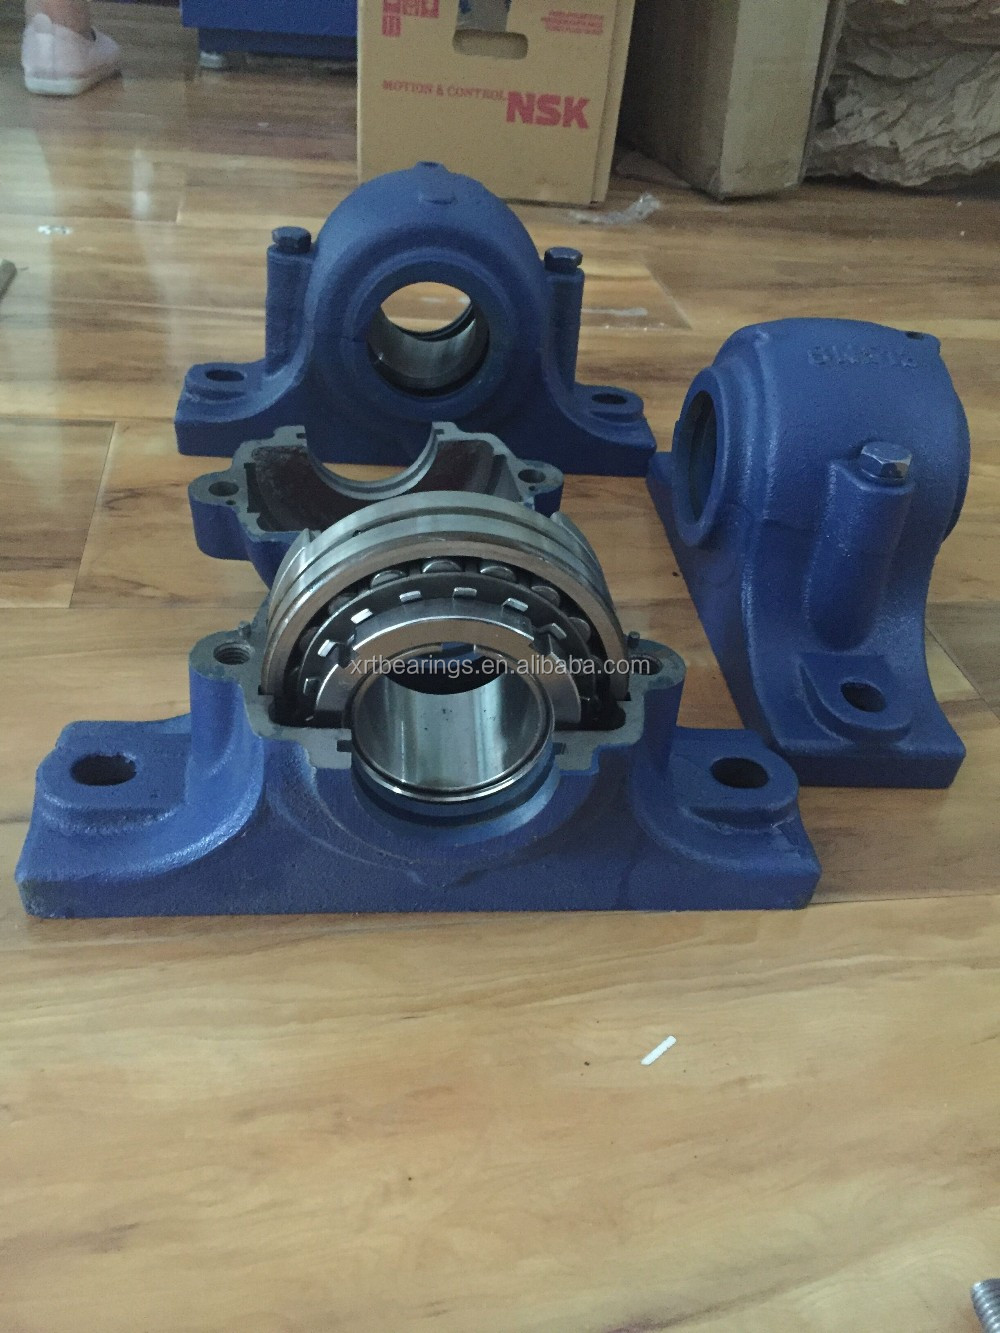 High quality pillow block bearing SNL515 bearing housing unit 22215EK+SNL515+H315 ball bearing